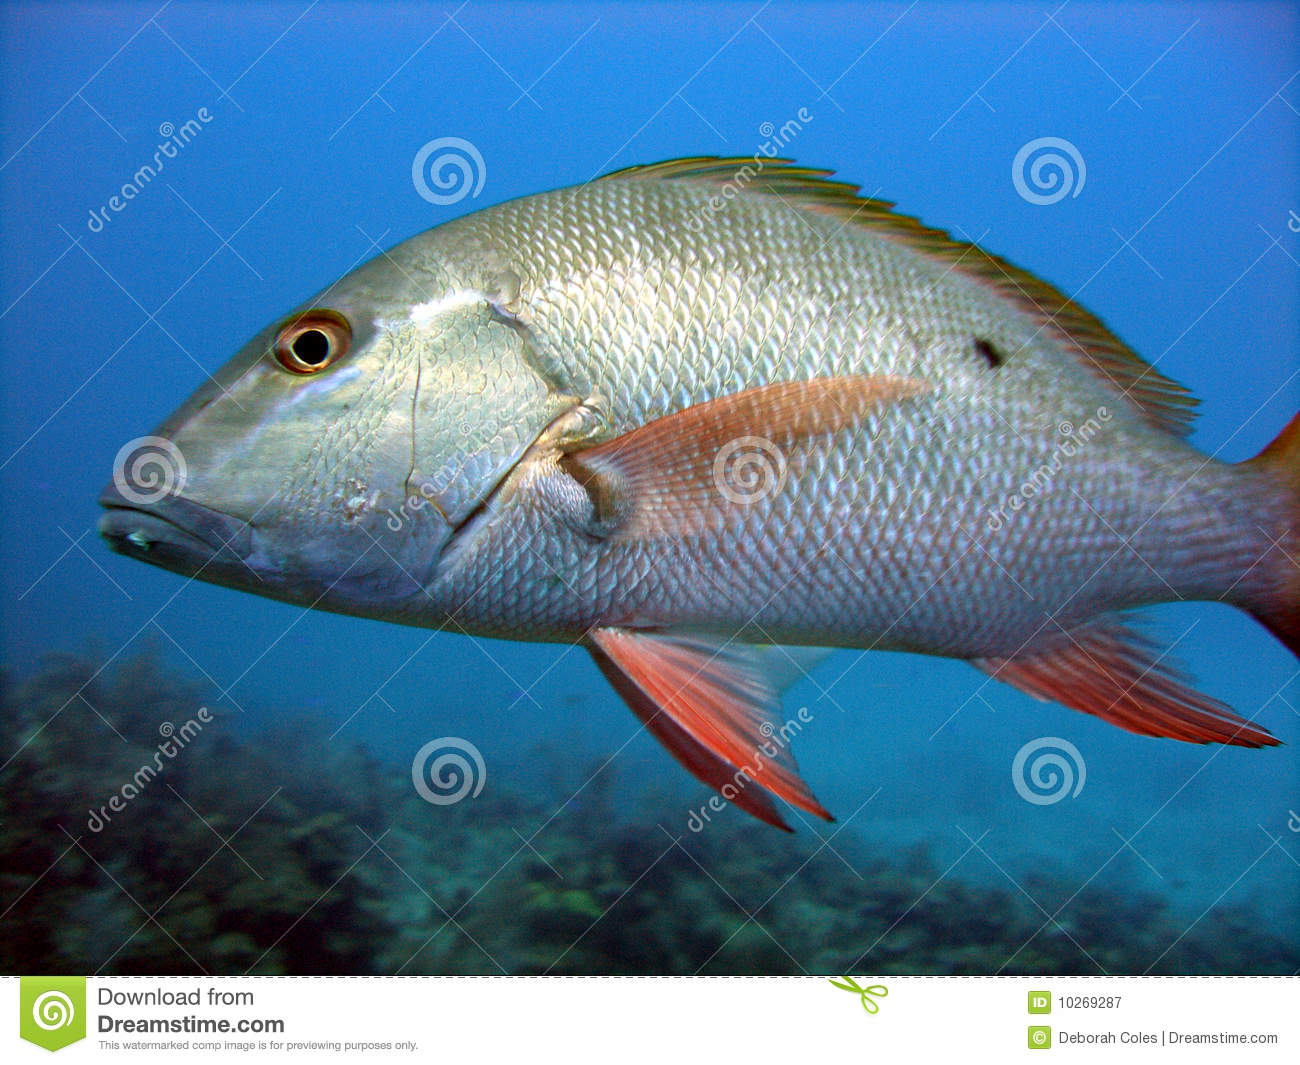 Shinny Caribbean: Silver Fish Scales Stock Image. Image Of Exotic, Reef